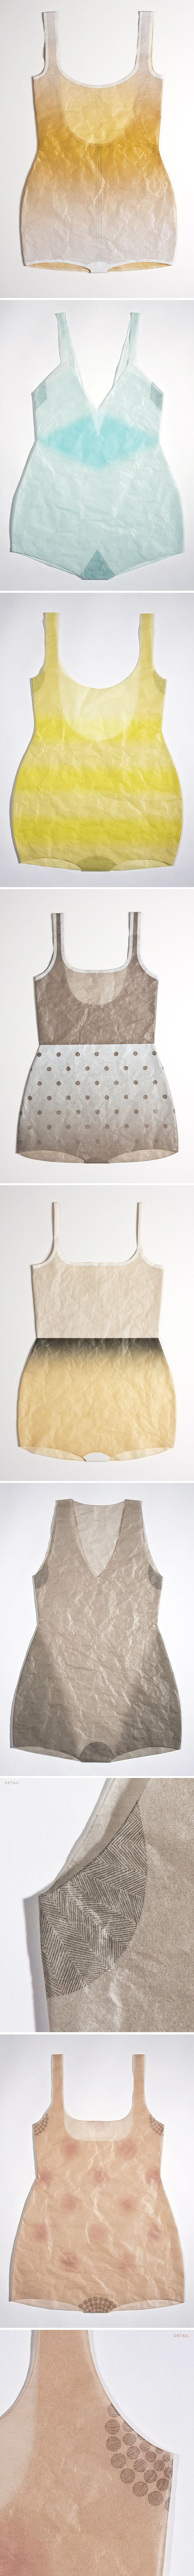 sewn paper, with printed ink... bathing suits by kristen martincic